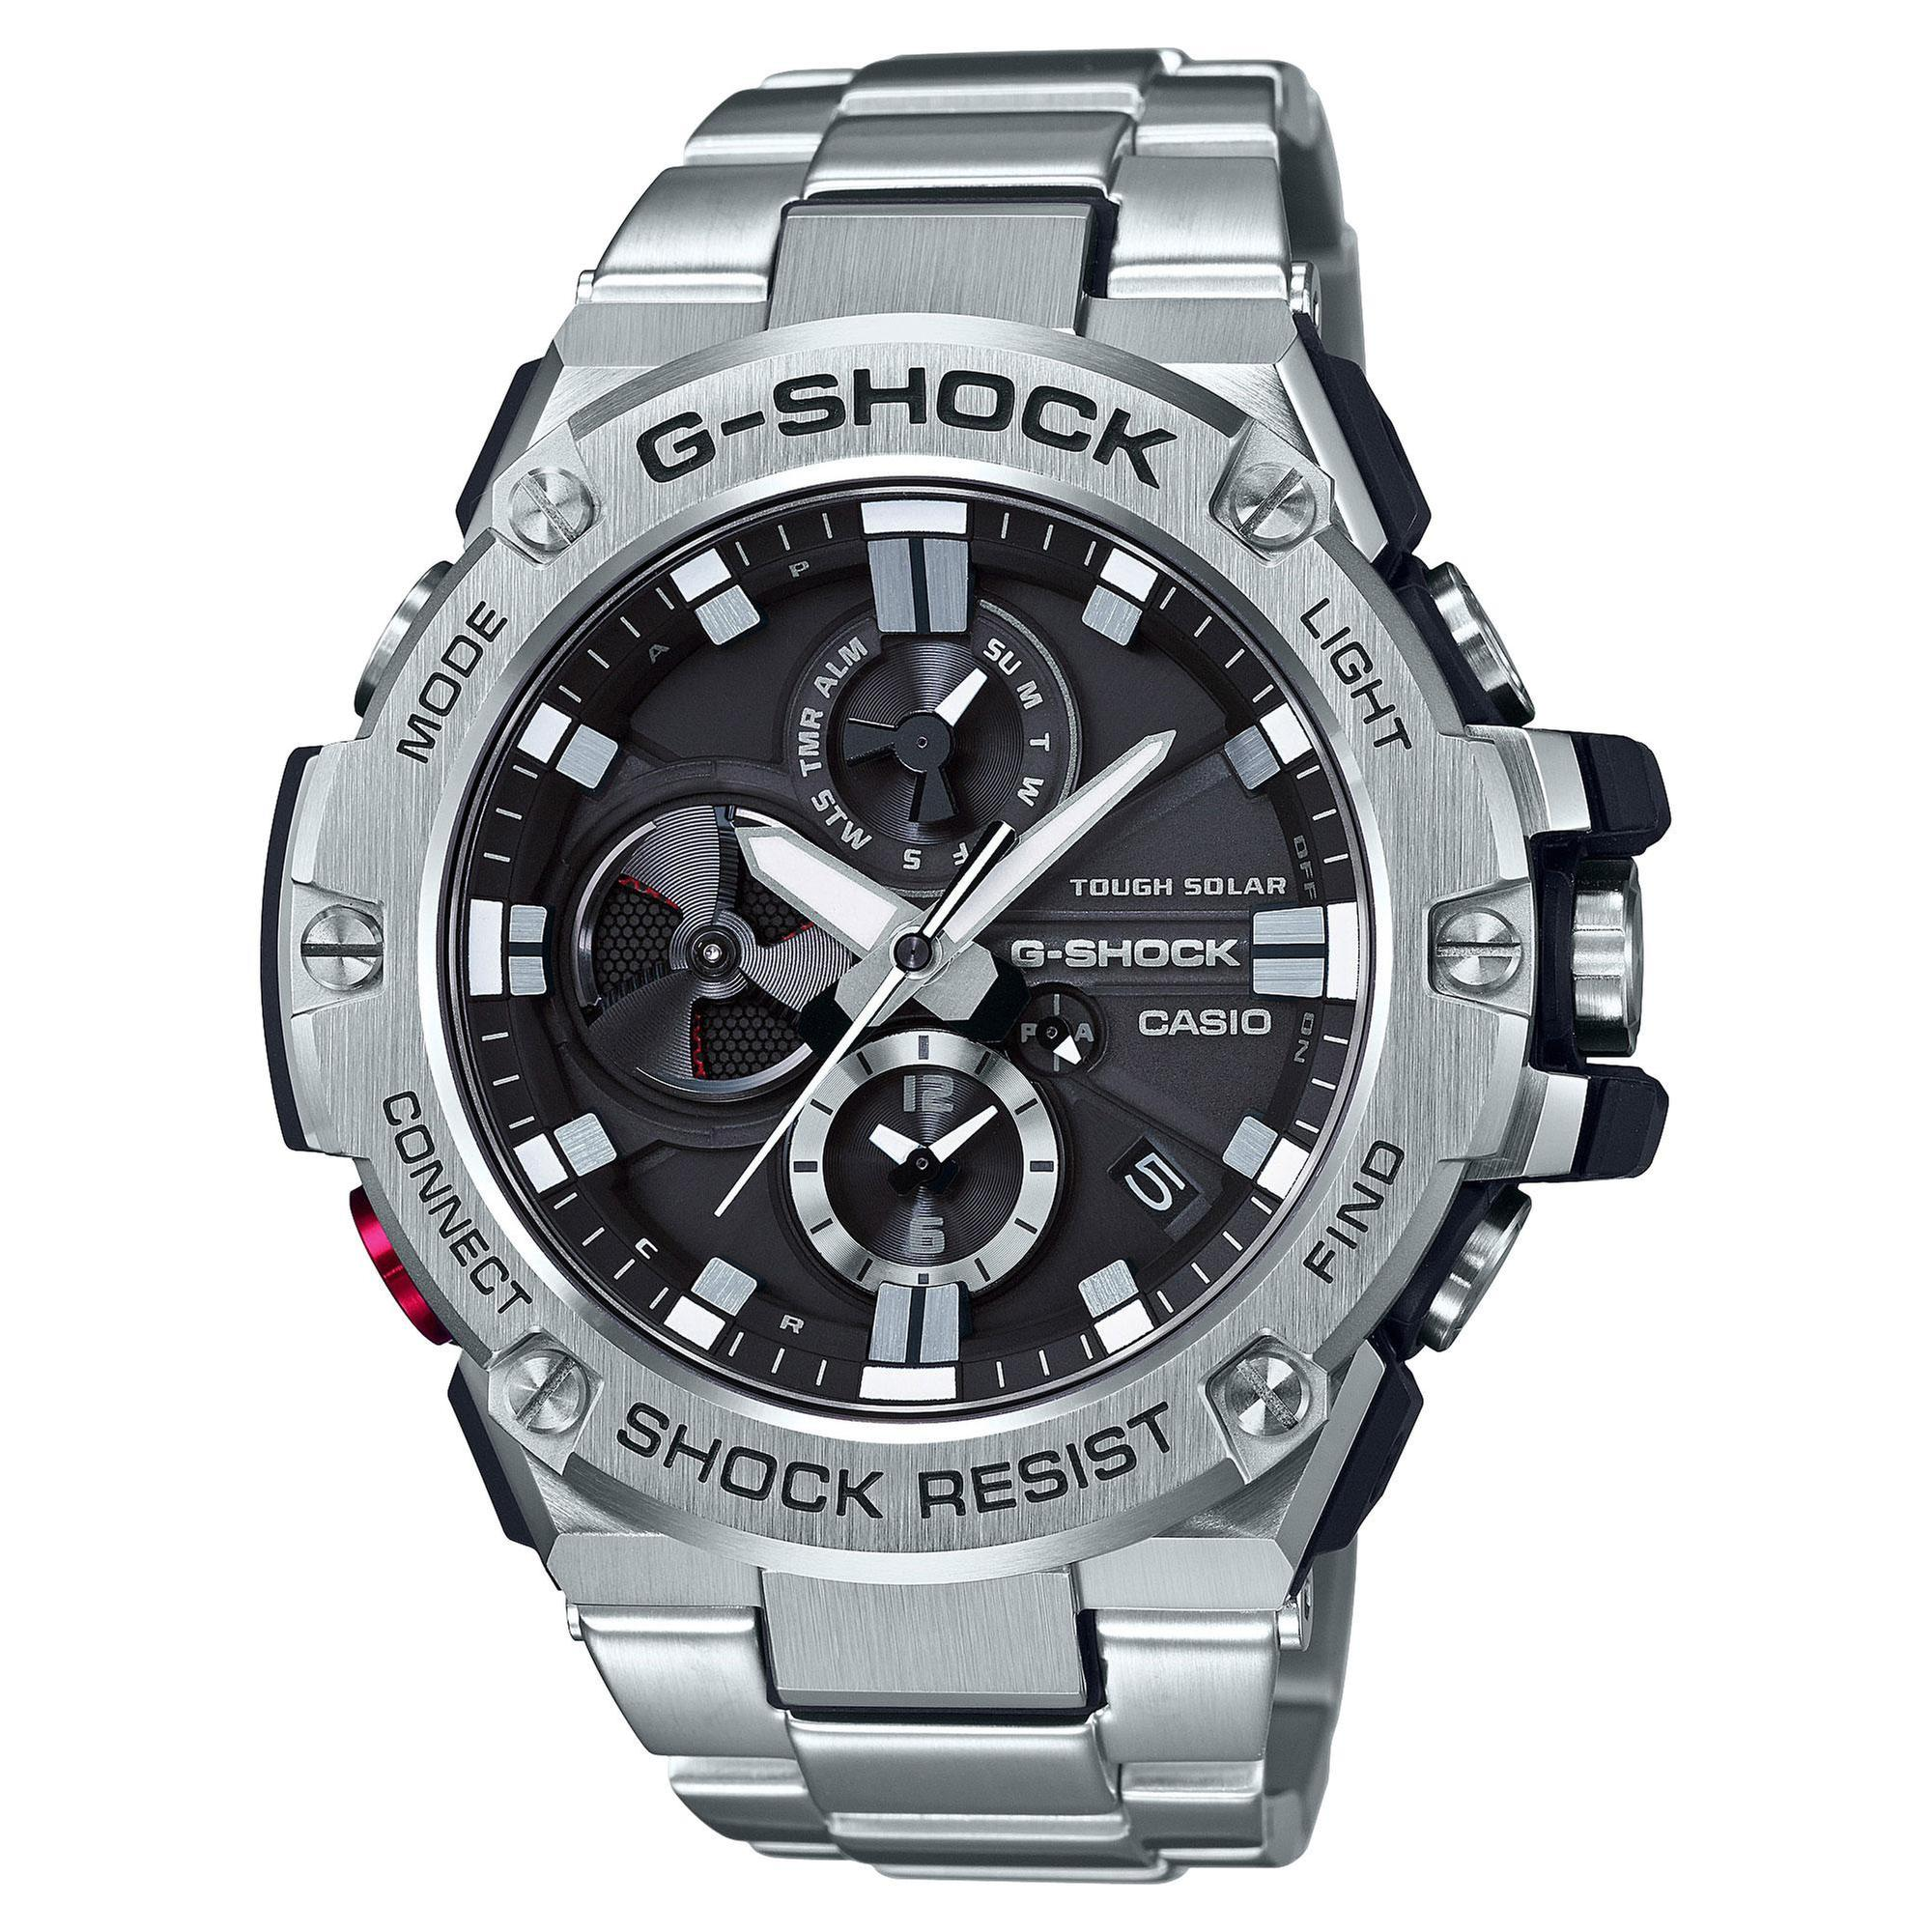 Casio GST-B100D-1AER G-Shock Bluetooth Solar